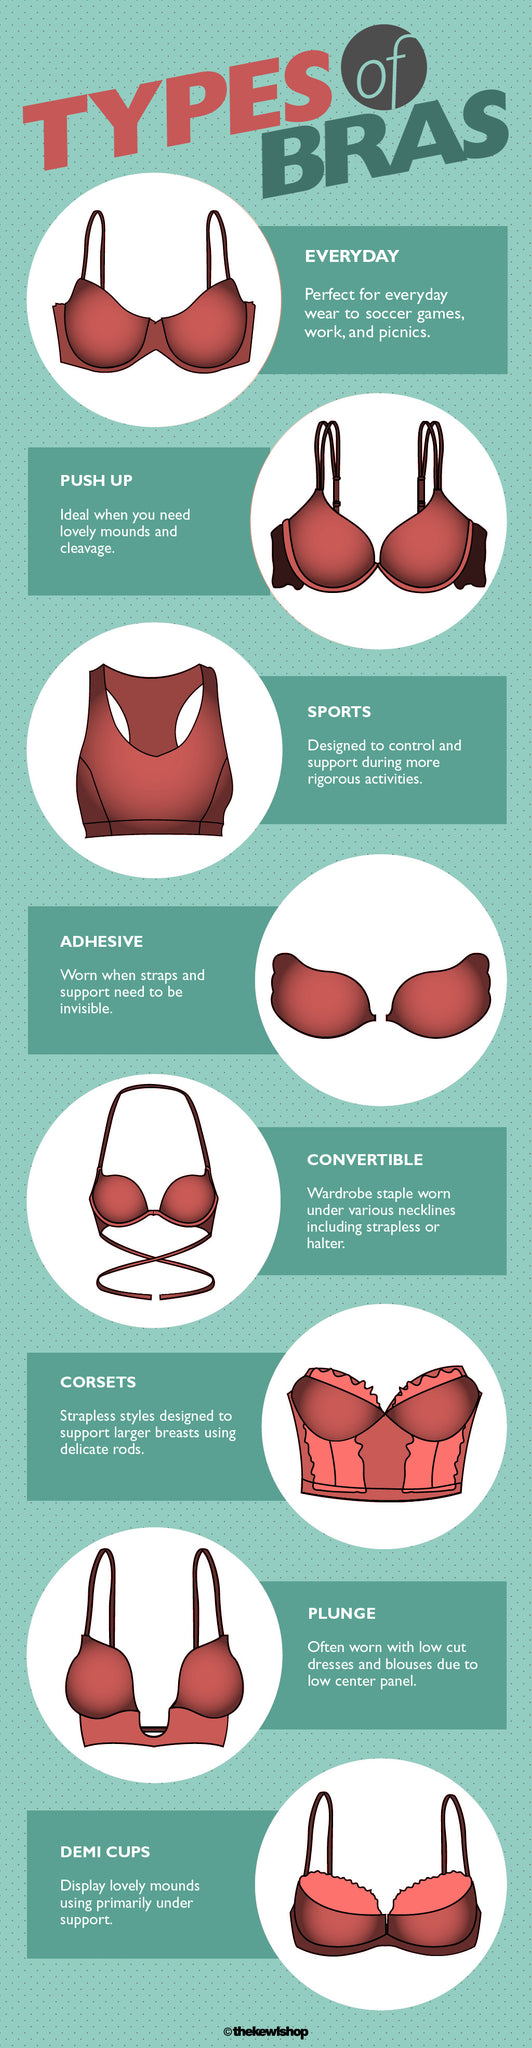 How to Choose the Right Bra Size and Style | The Kewl Blog